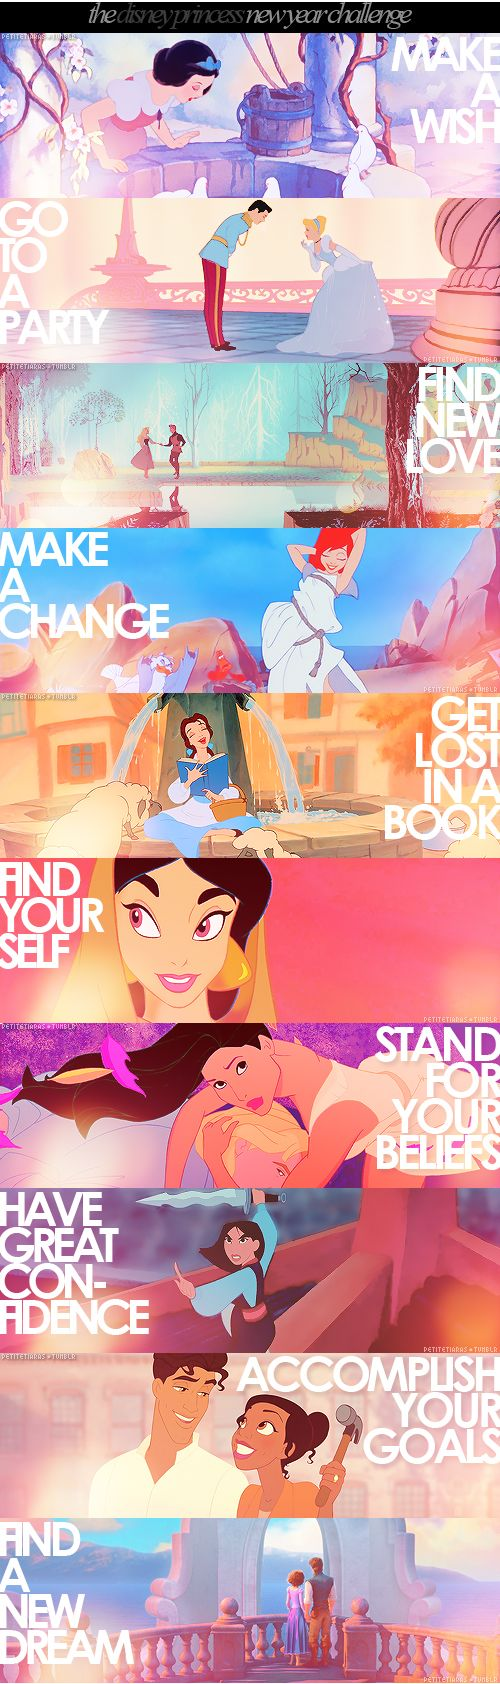 Disney princess advice